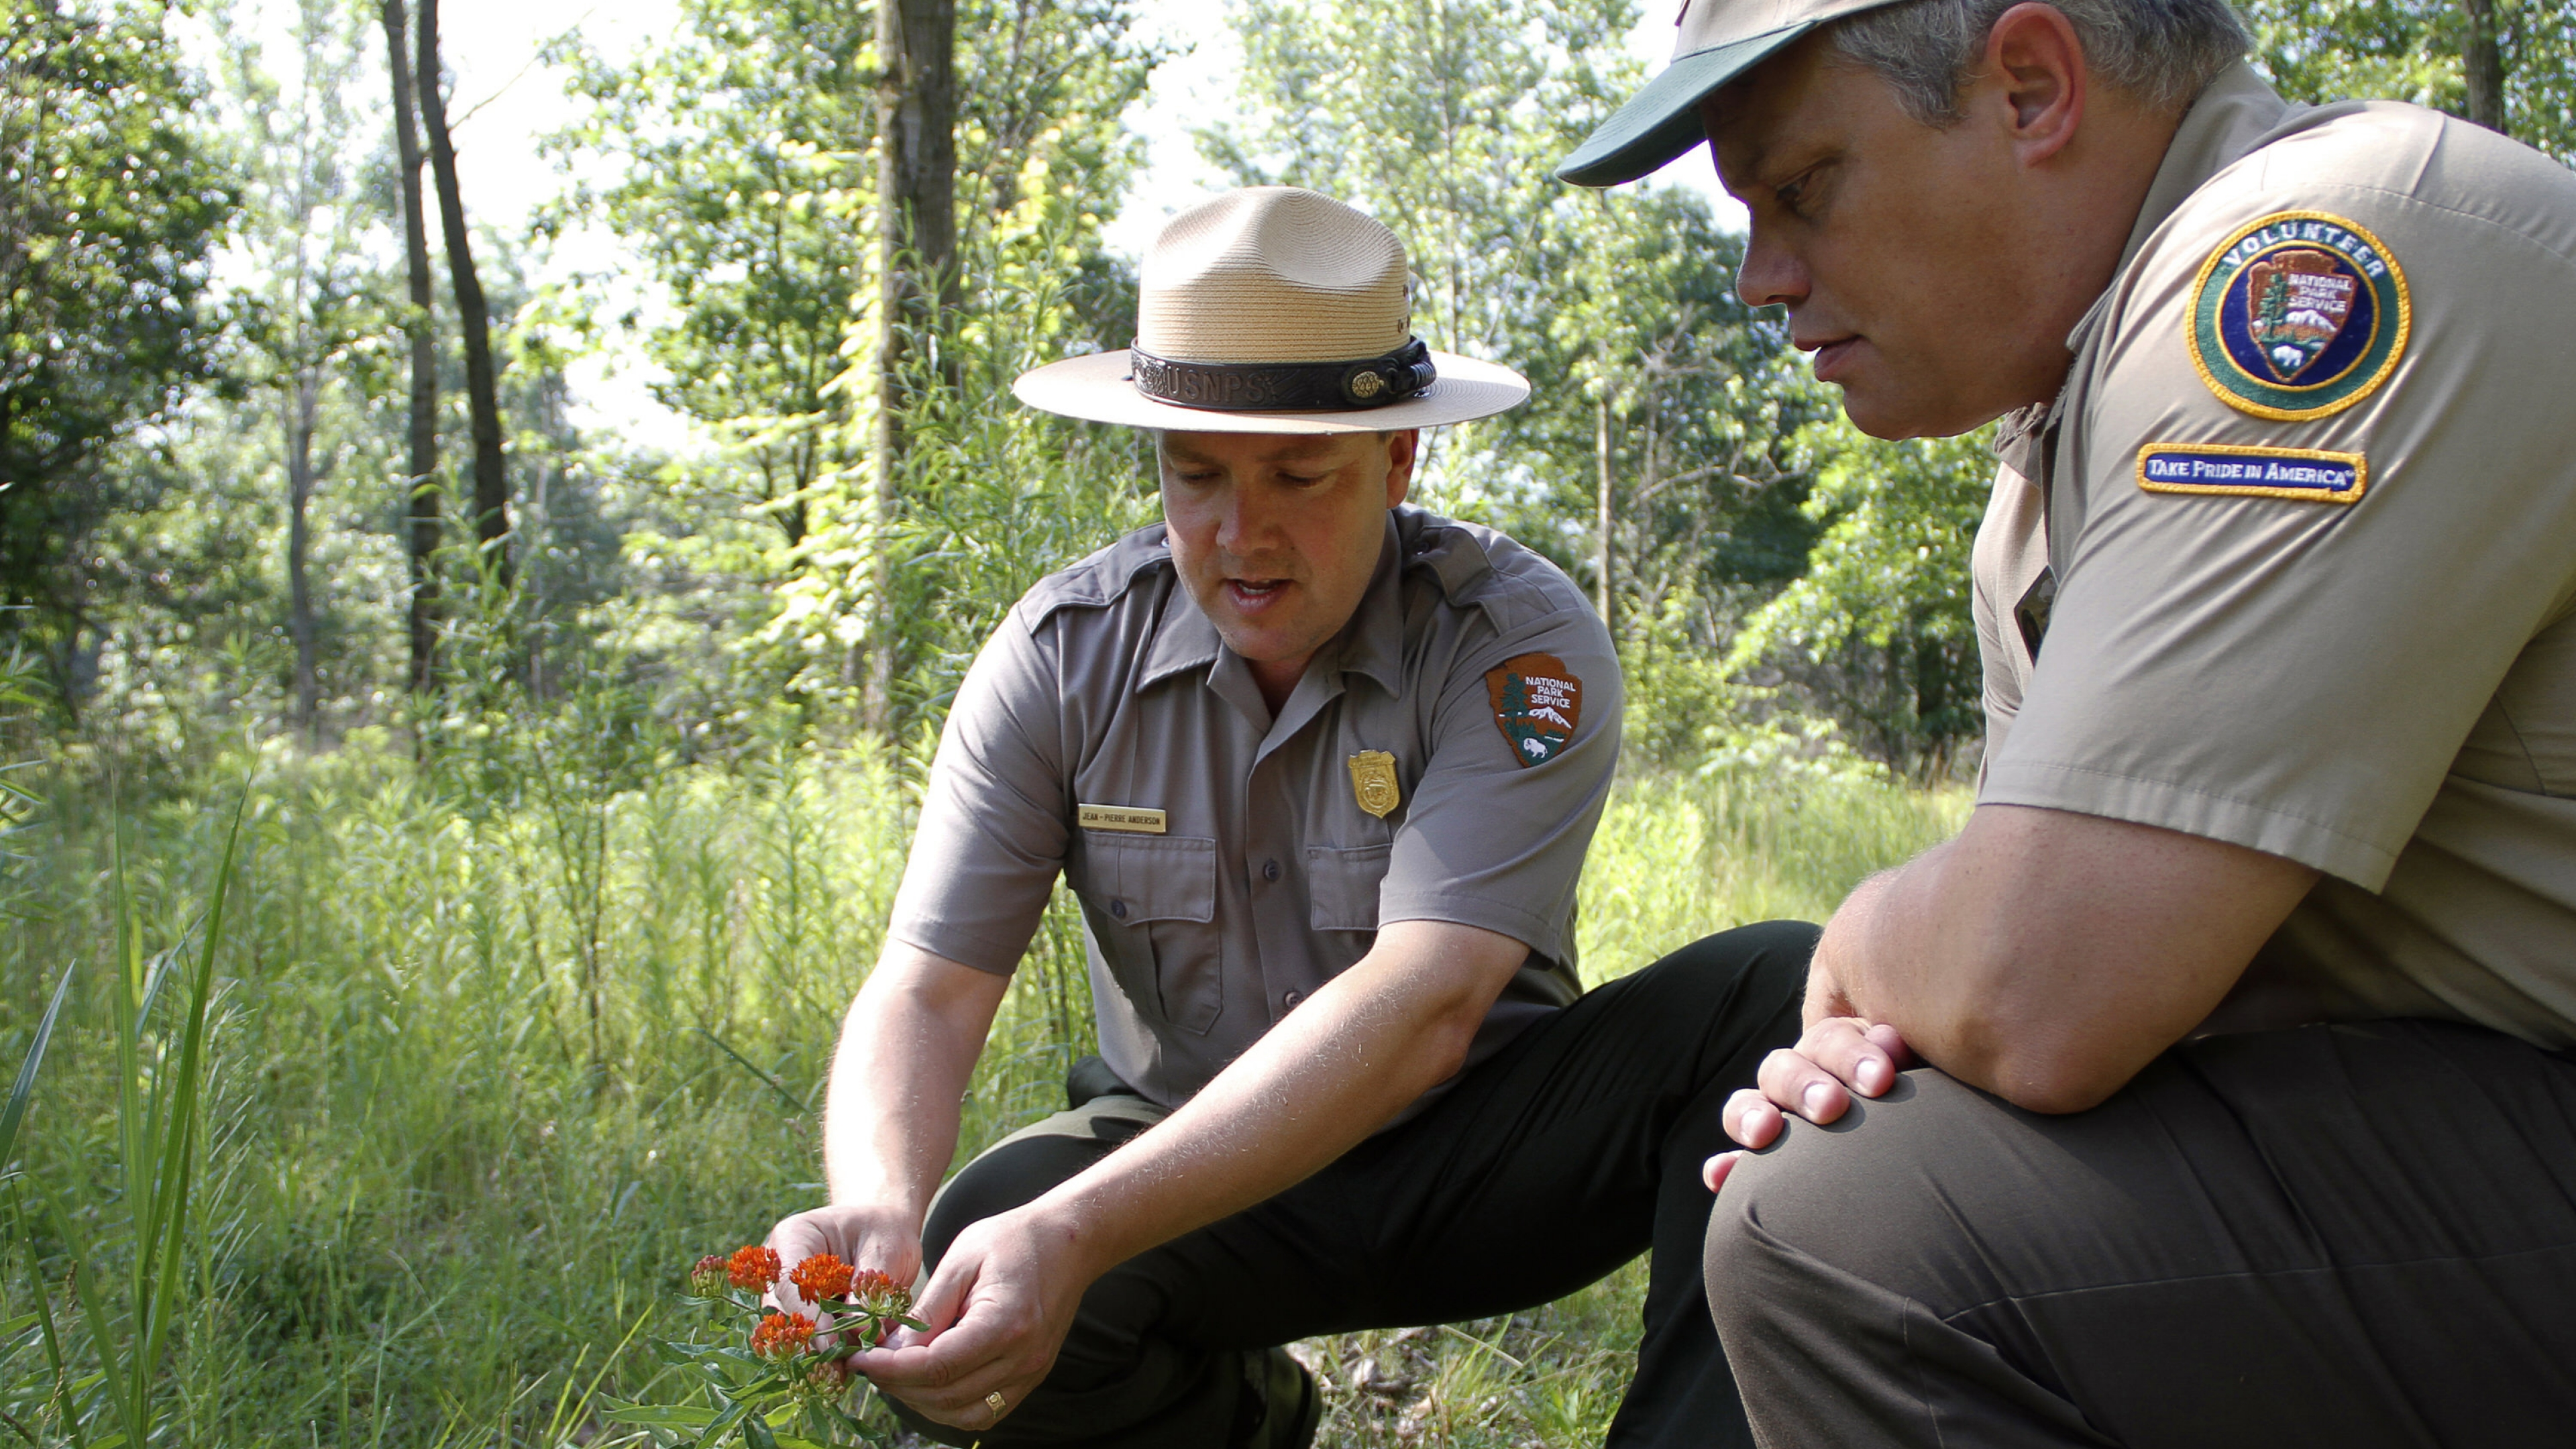 A park ranger and a volunteer squatting looking at a red flower at Indiana Dunes National Lakeshore